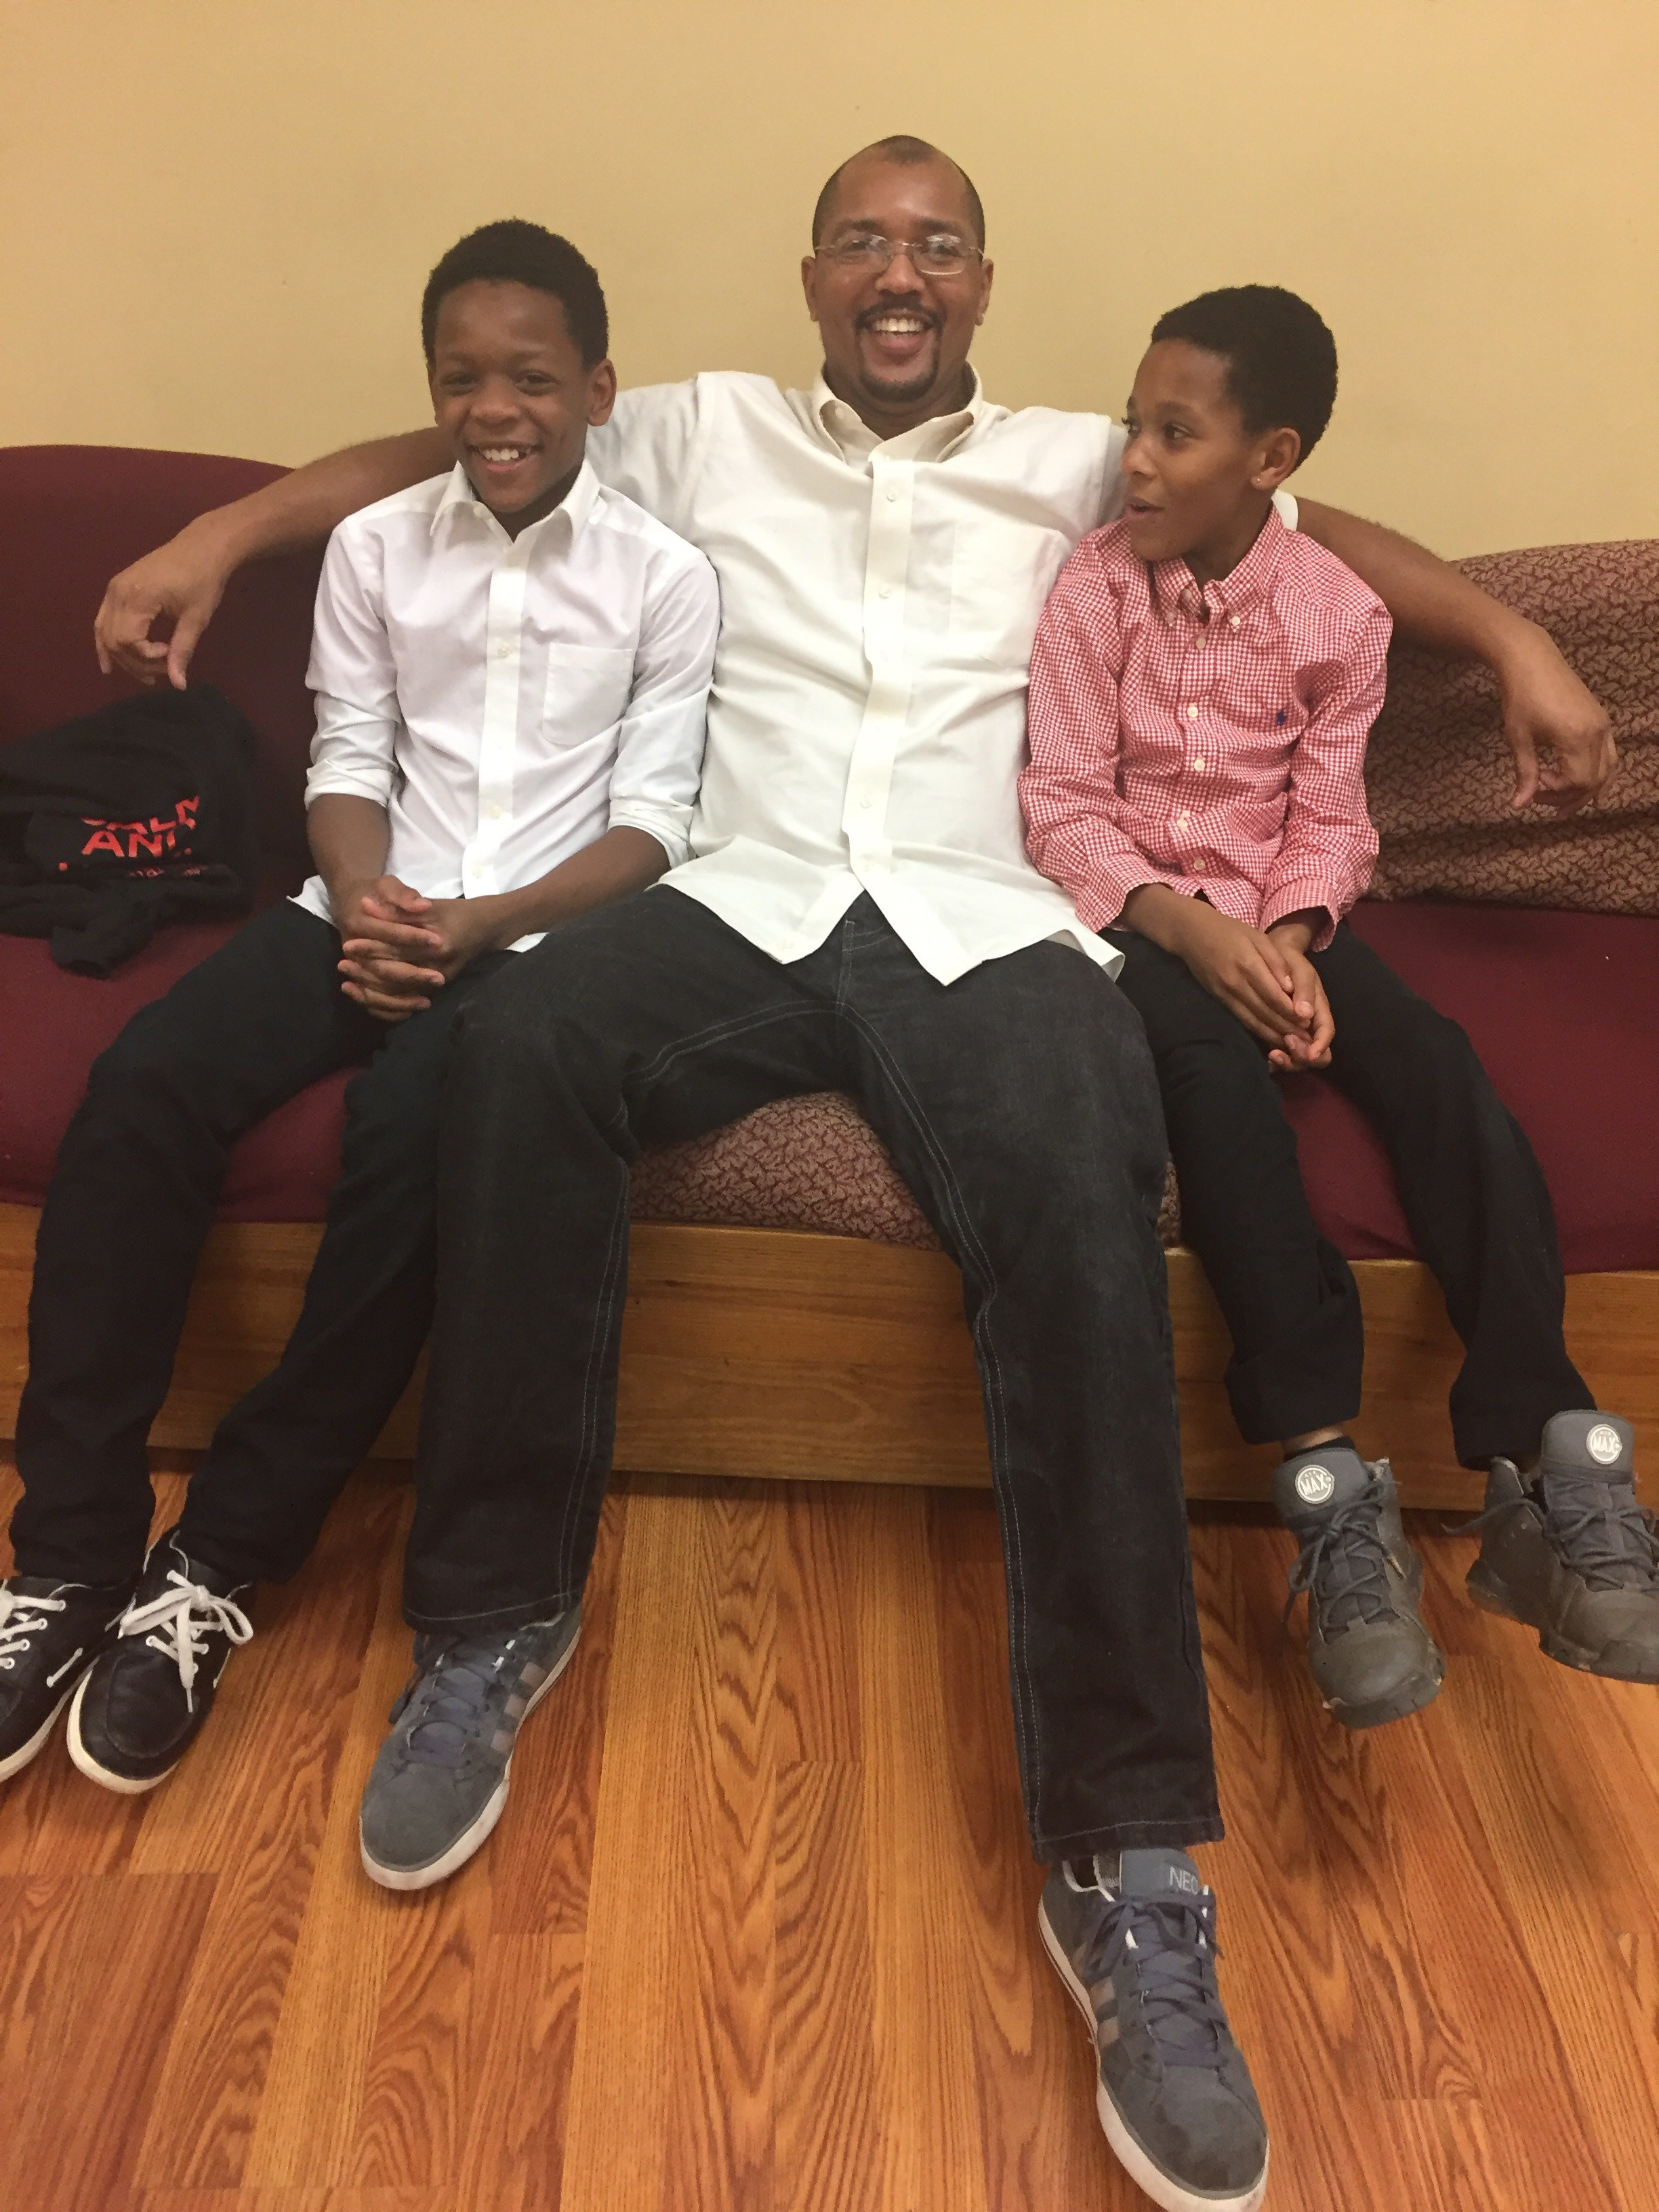 Derwin, Quez and Yekiel, a Family Promise family